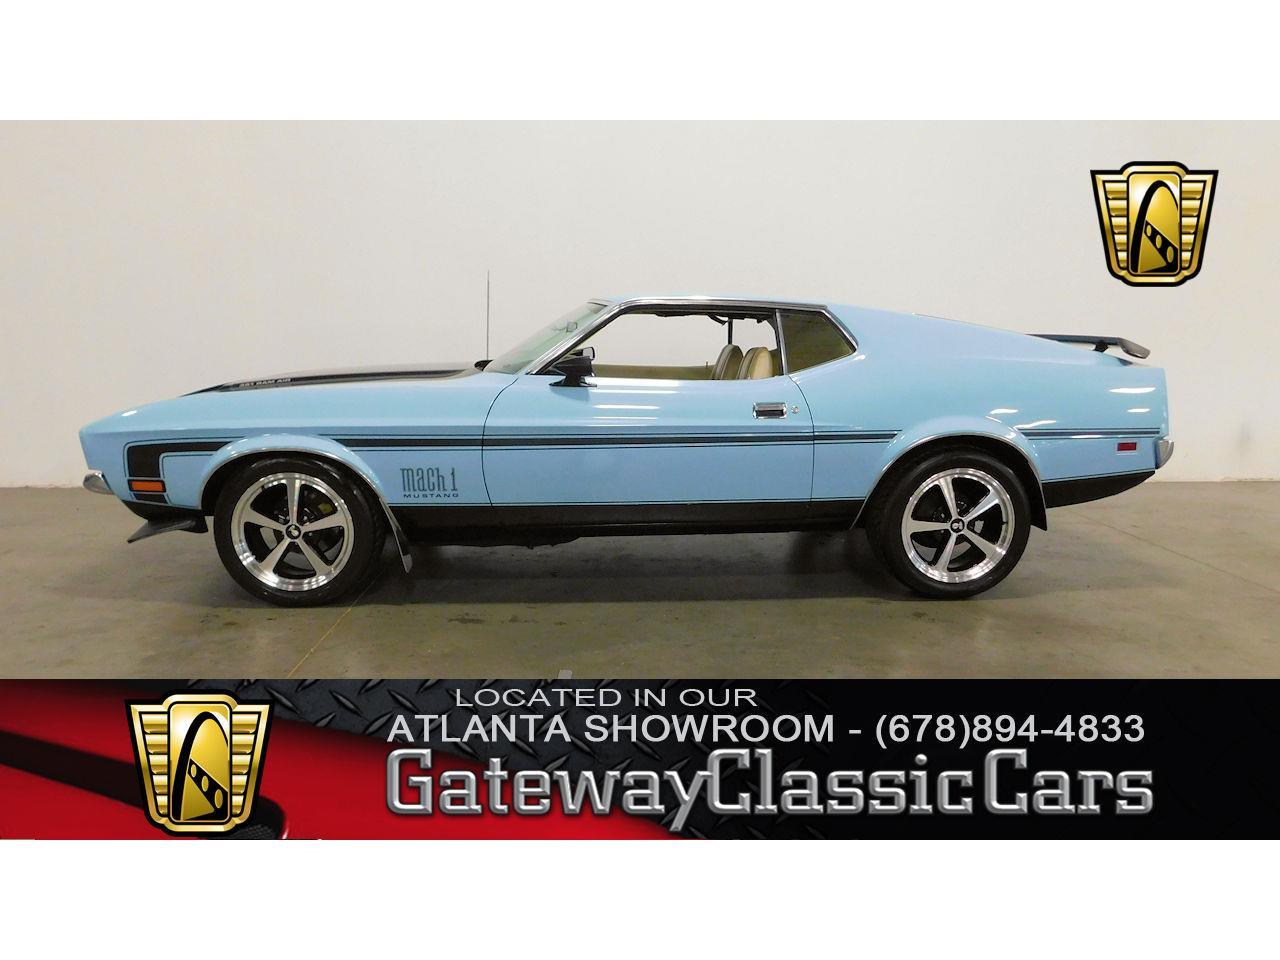 Large Picture of 1971 Mustang - $33,995.00 Offered by Gateway Classic Cars - Atlanta - LTQ6